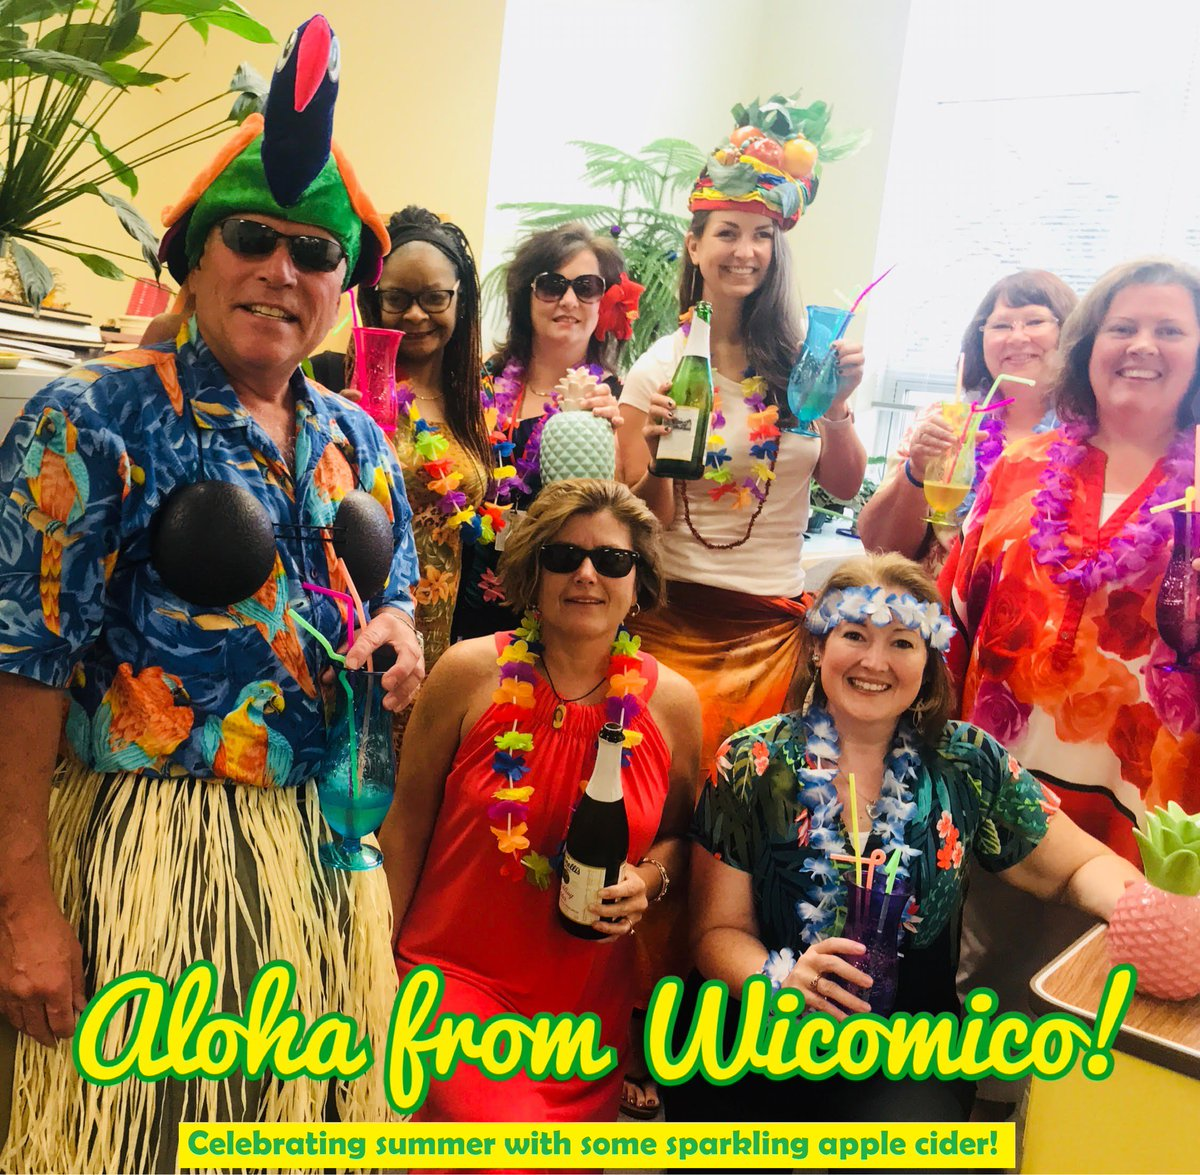 92f856d3c1 Check out the fantastic photos of our local assessment offices sporting  their Hawaiian shirts